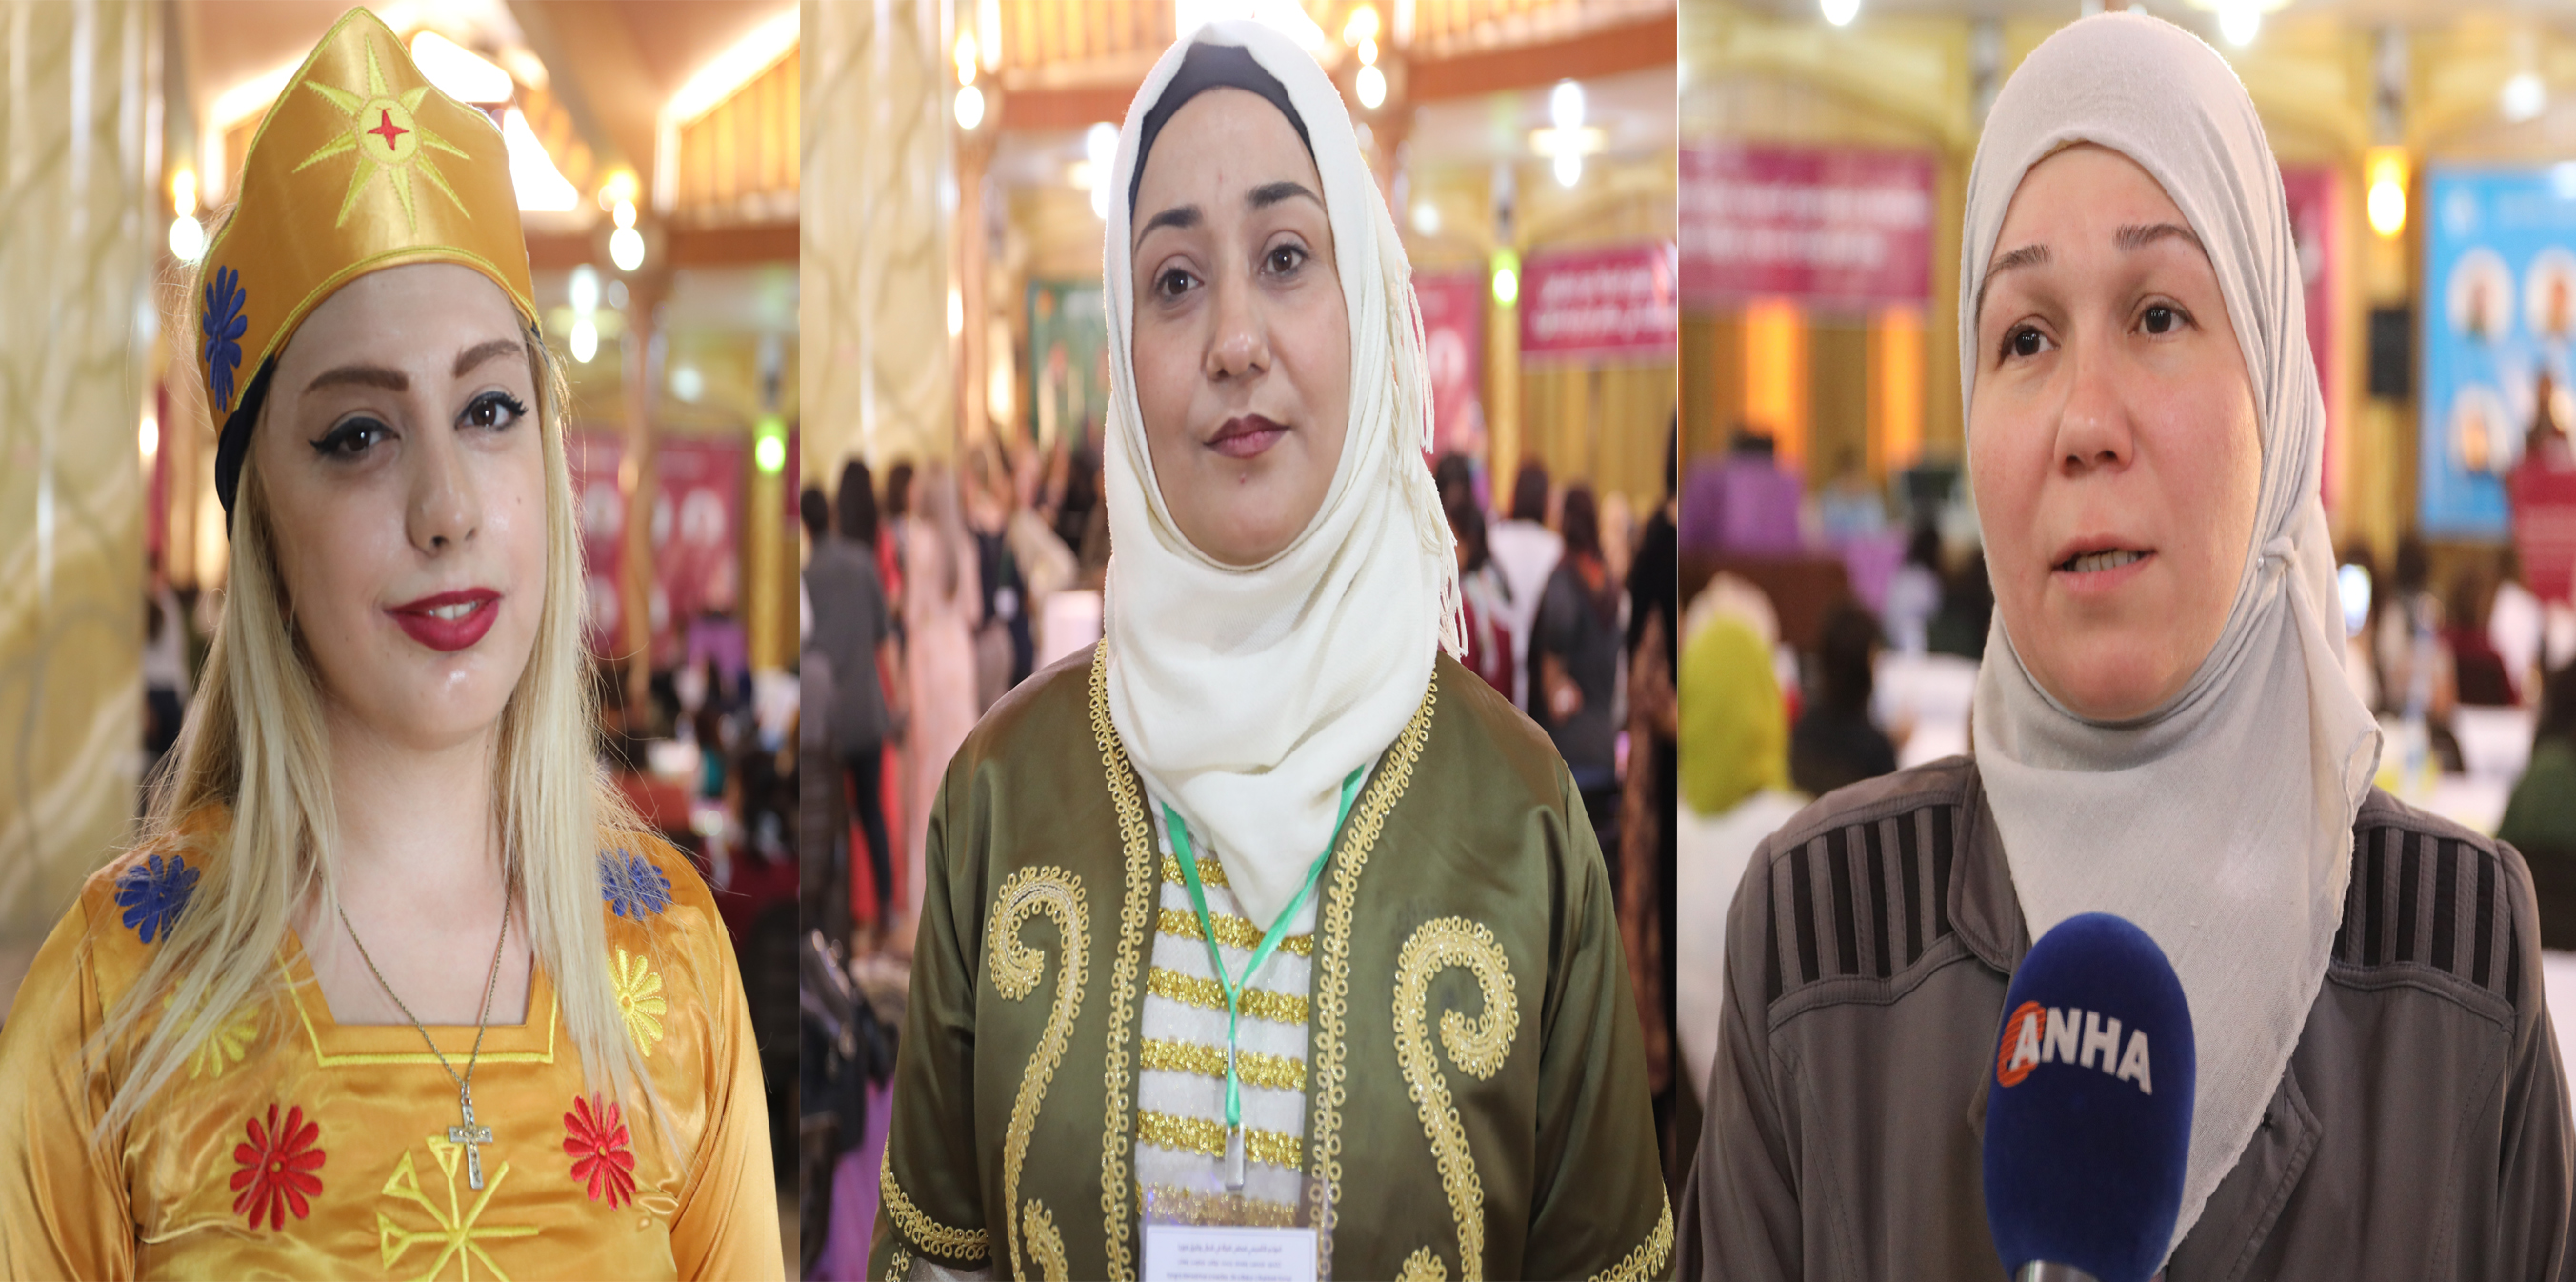 'Syrian Women's Council will be the means to communicate the voice of women to the world'